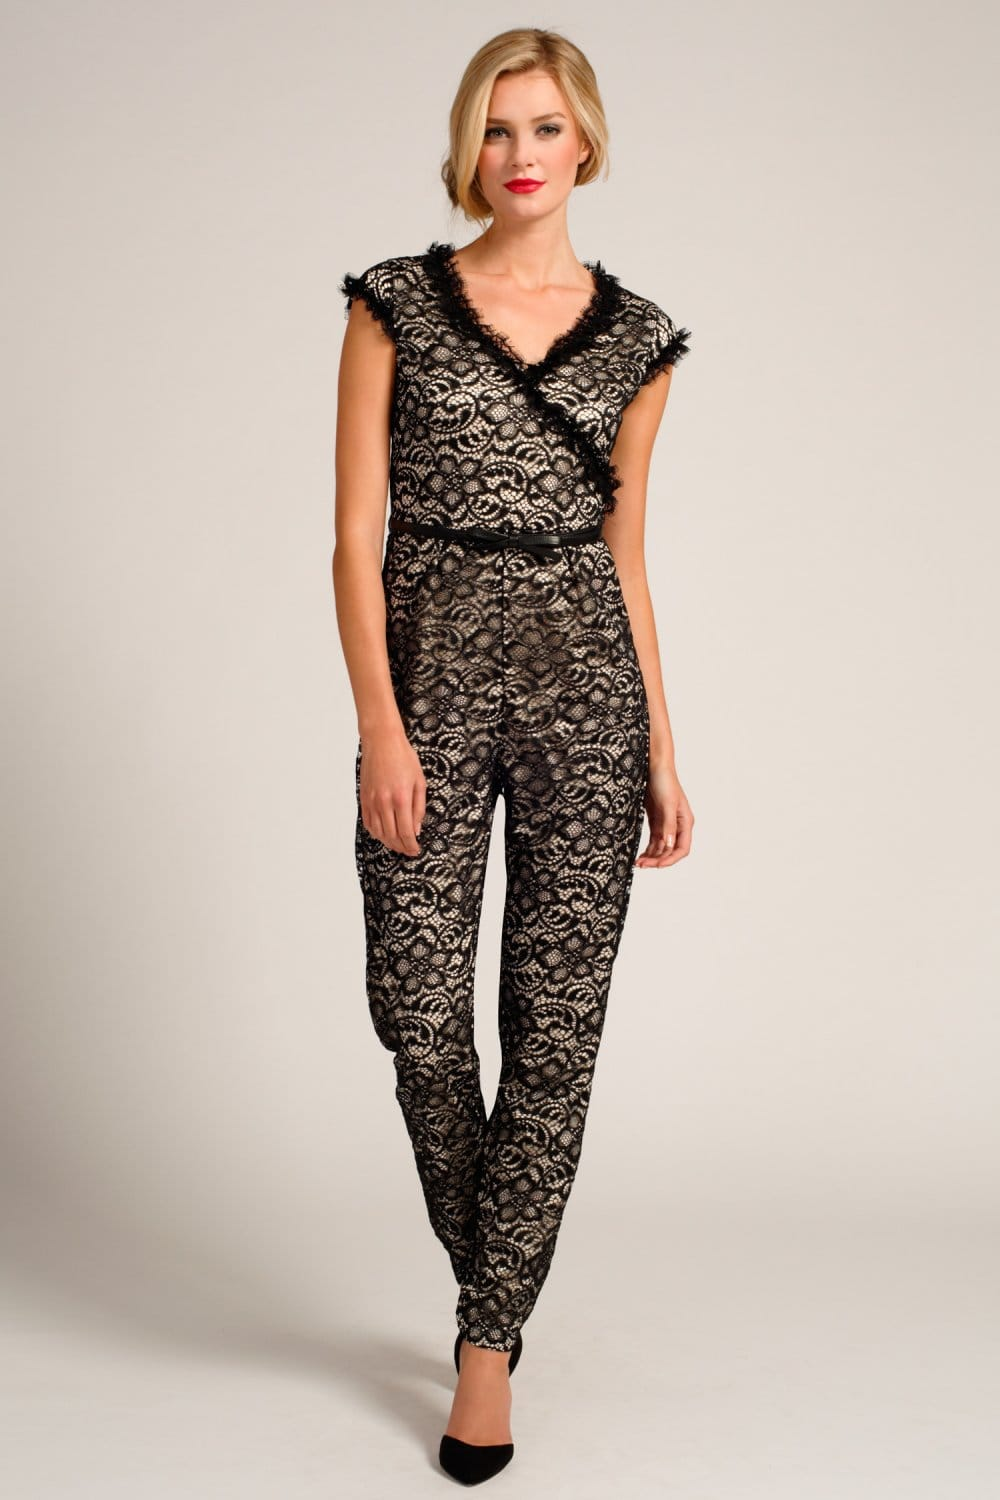 Find great deals on eBay for lace jumpsuit. Shop with confidence.